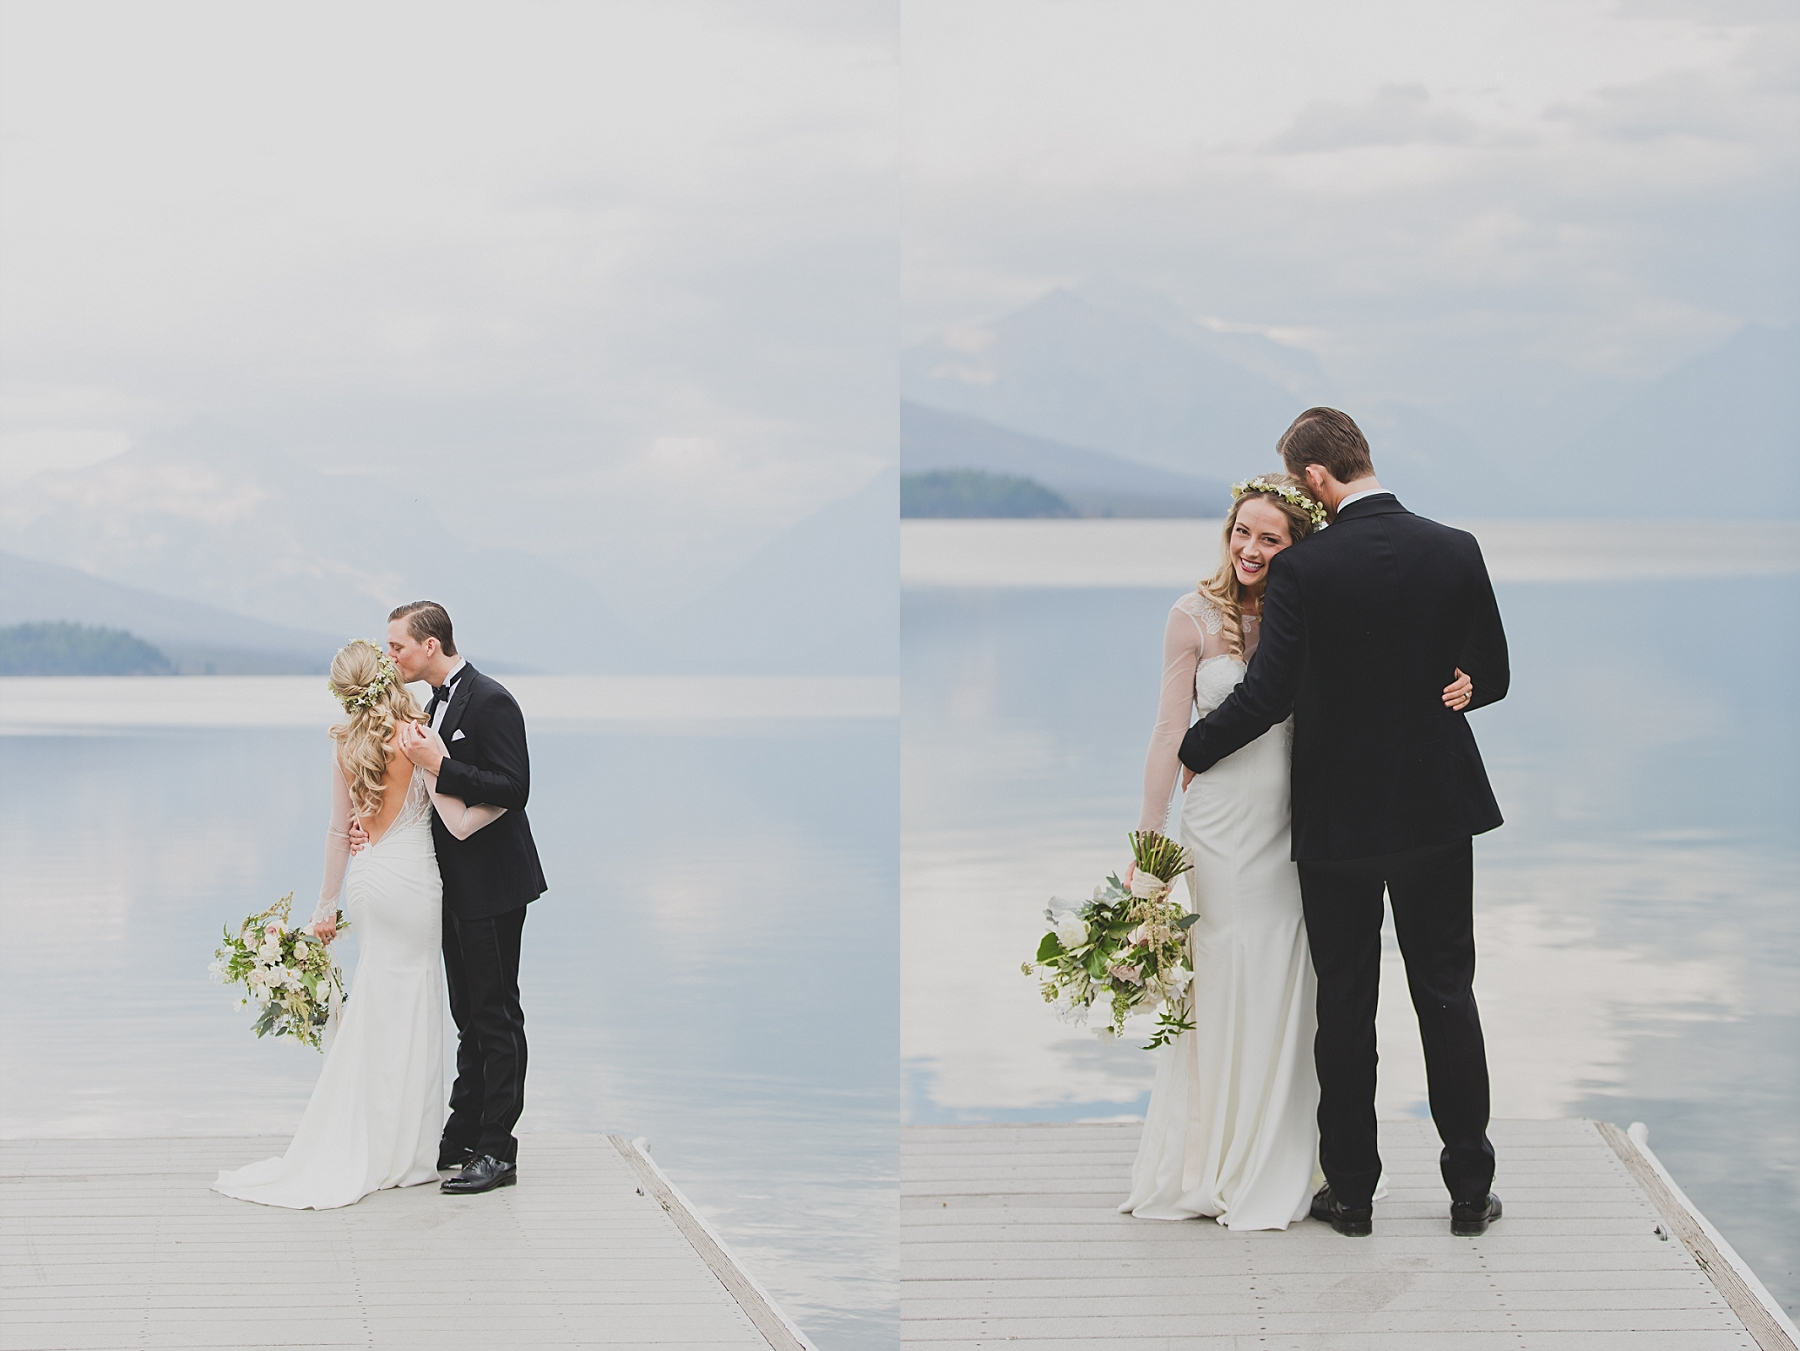 Jennifer_Mooney_Photo_glacier_park_wedding_Beargrass_florals_fall_wedding_elegant_montana_destination_velvet_bride_katie_may_dress_verona_gown_00014.jpg